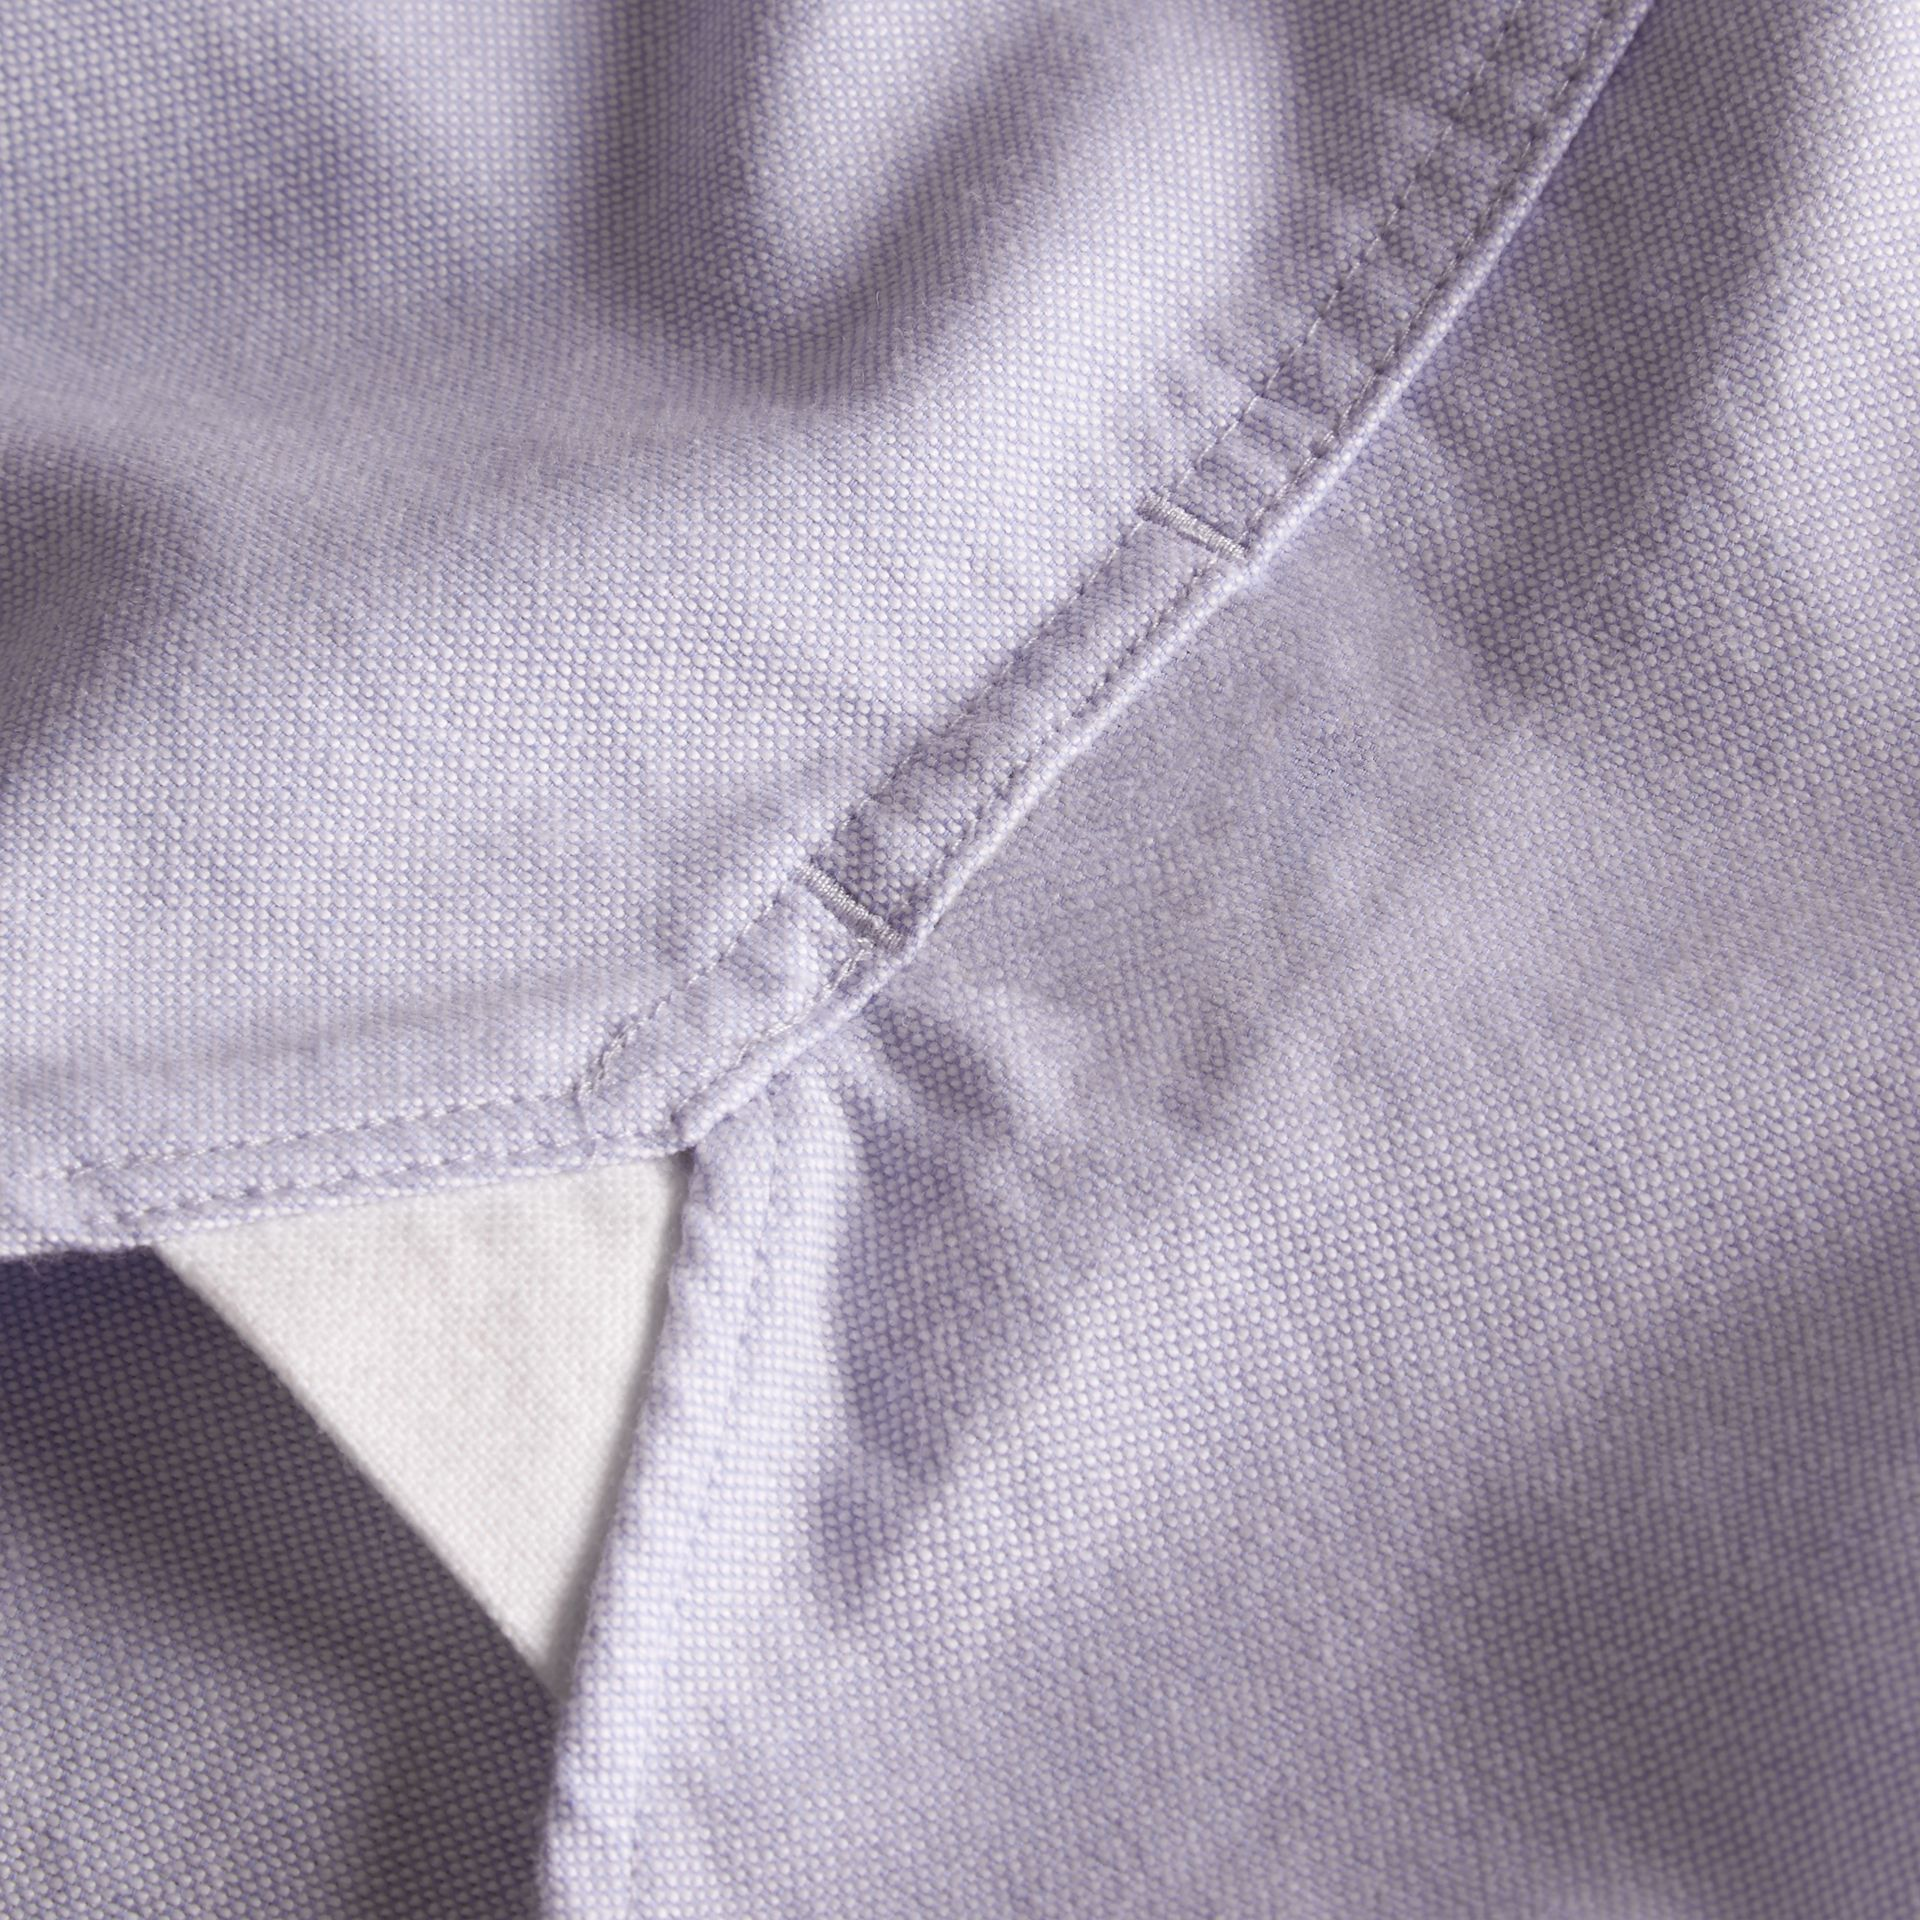 Check Detail Short-Sleeved Cotton Oxford Shirt in Cornflower Blue - Men | Burberry Hong Kong - gallery image 2